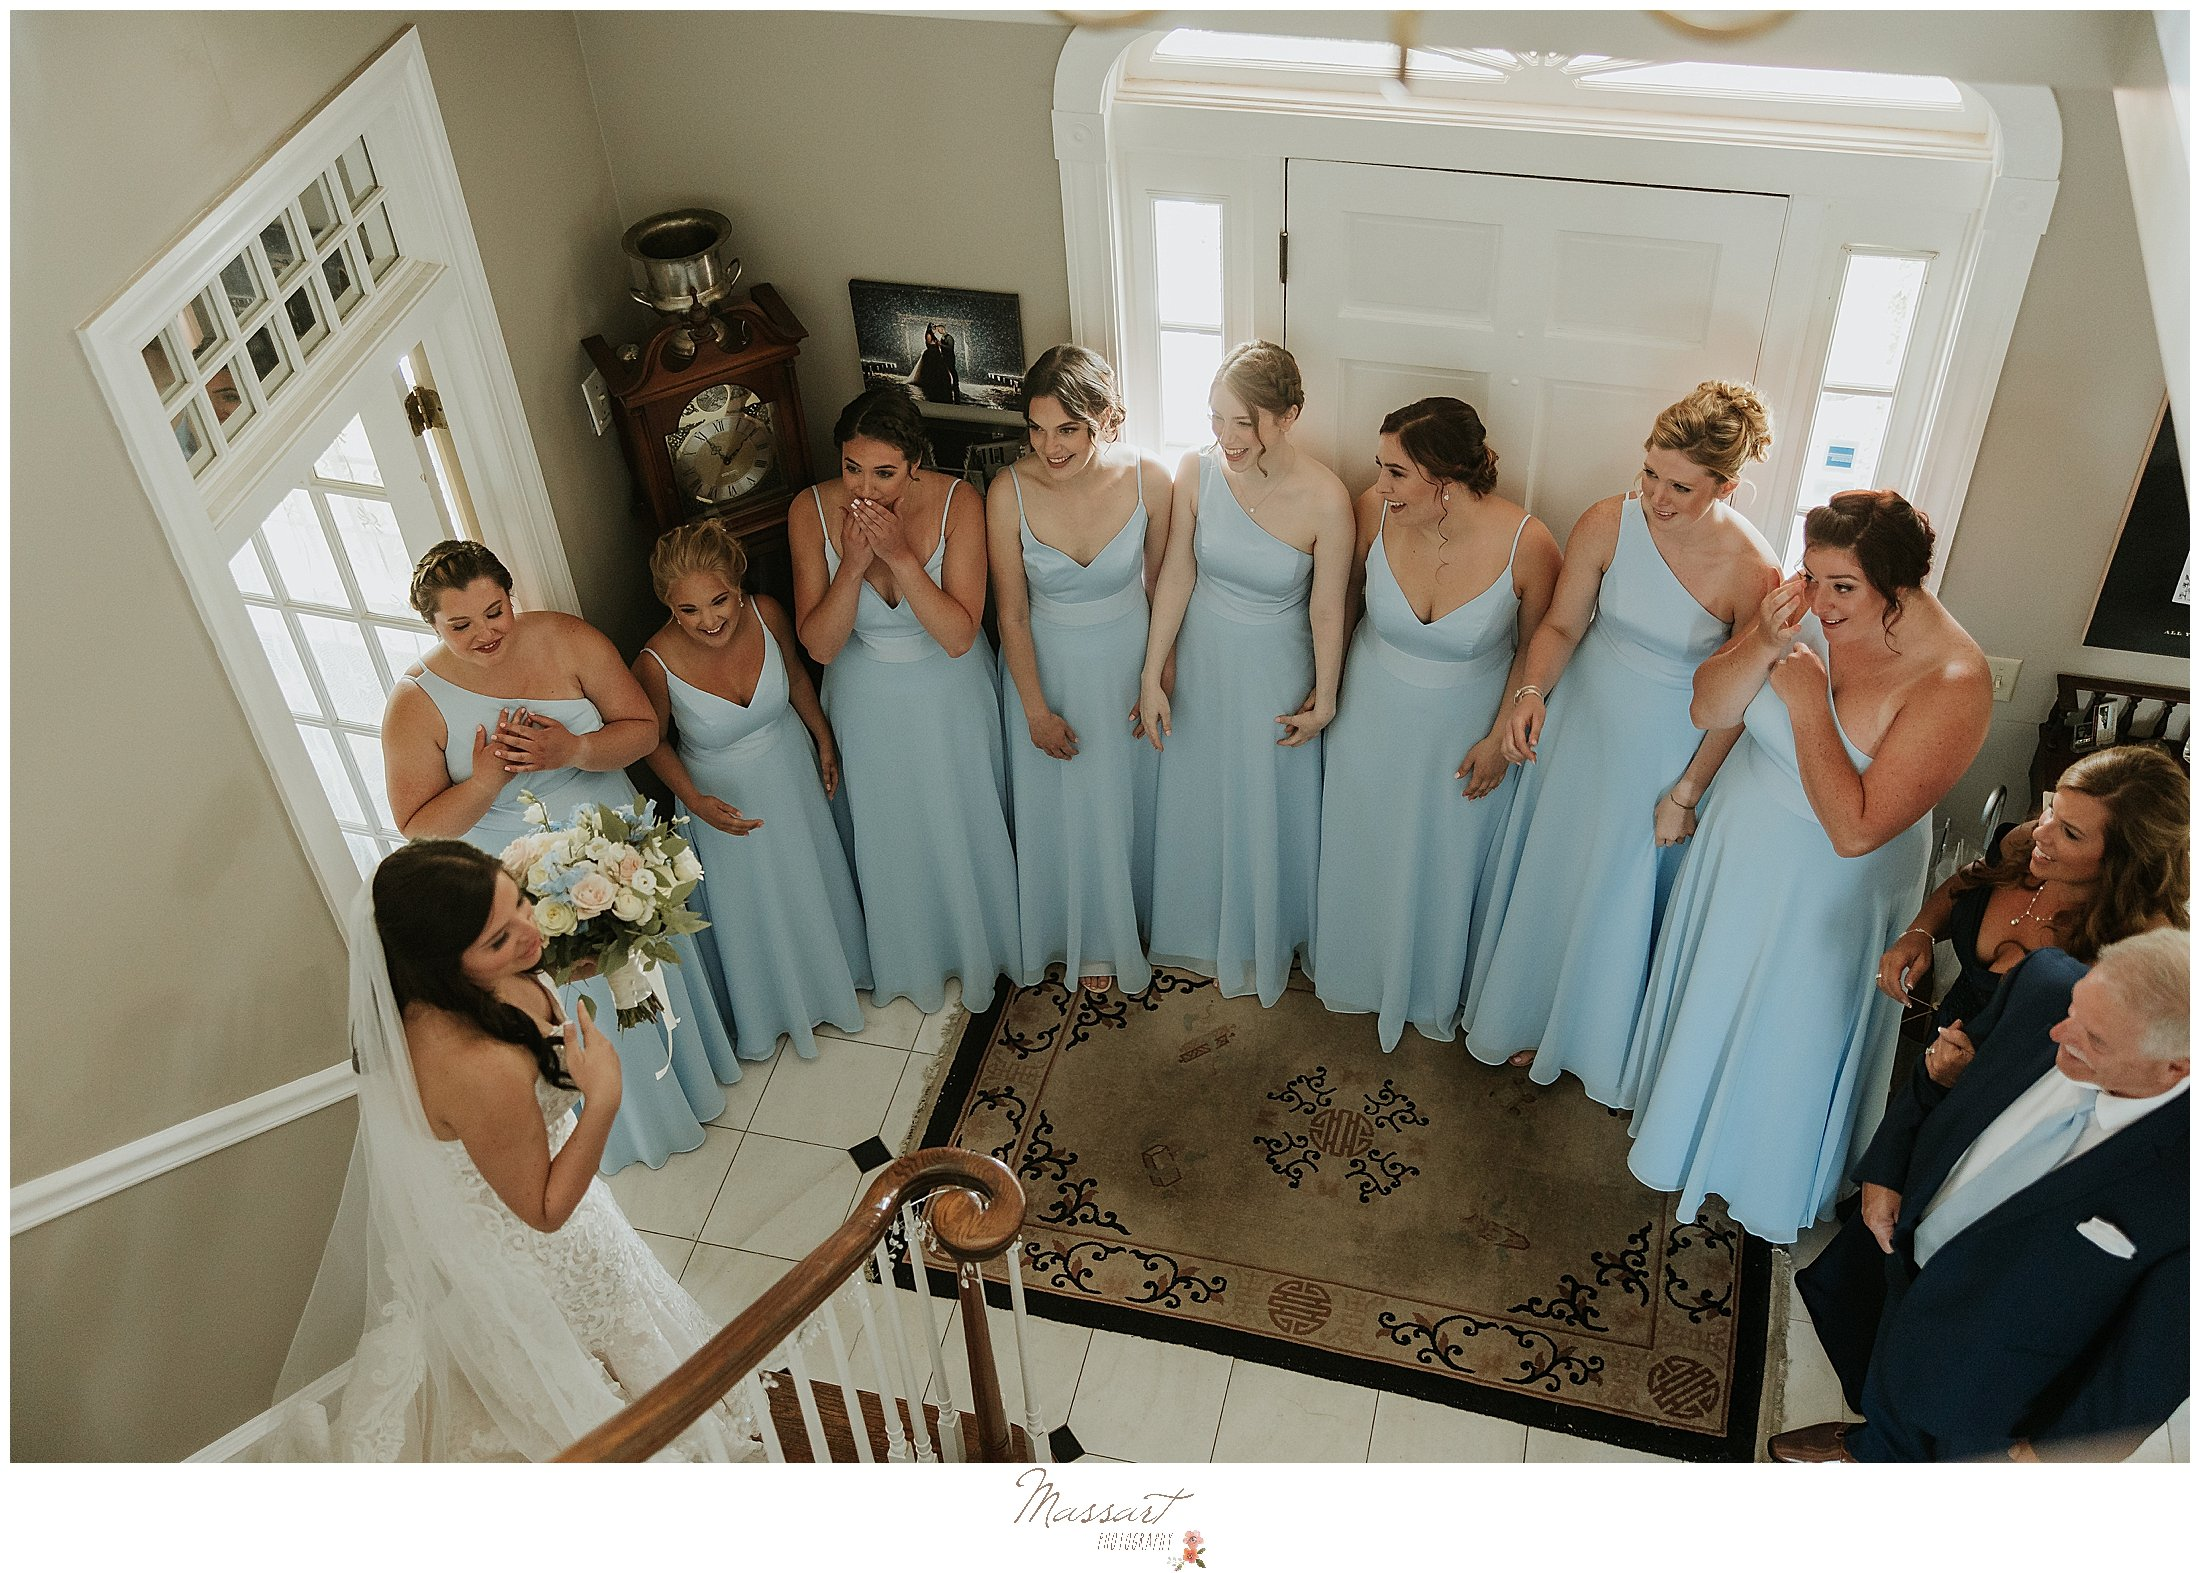 RI photographers capture bride seen by her bridesmaids for first look